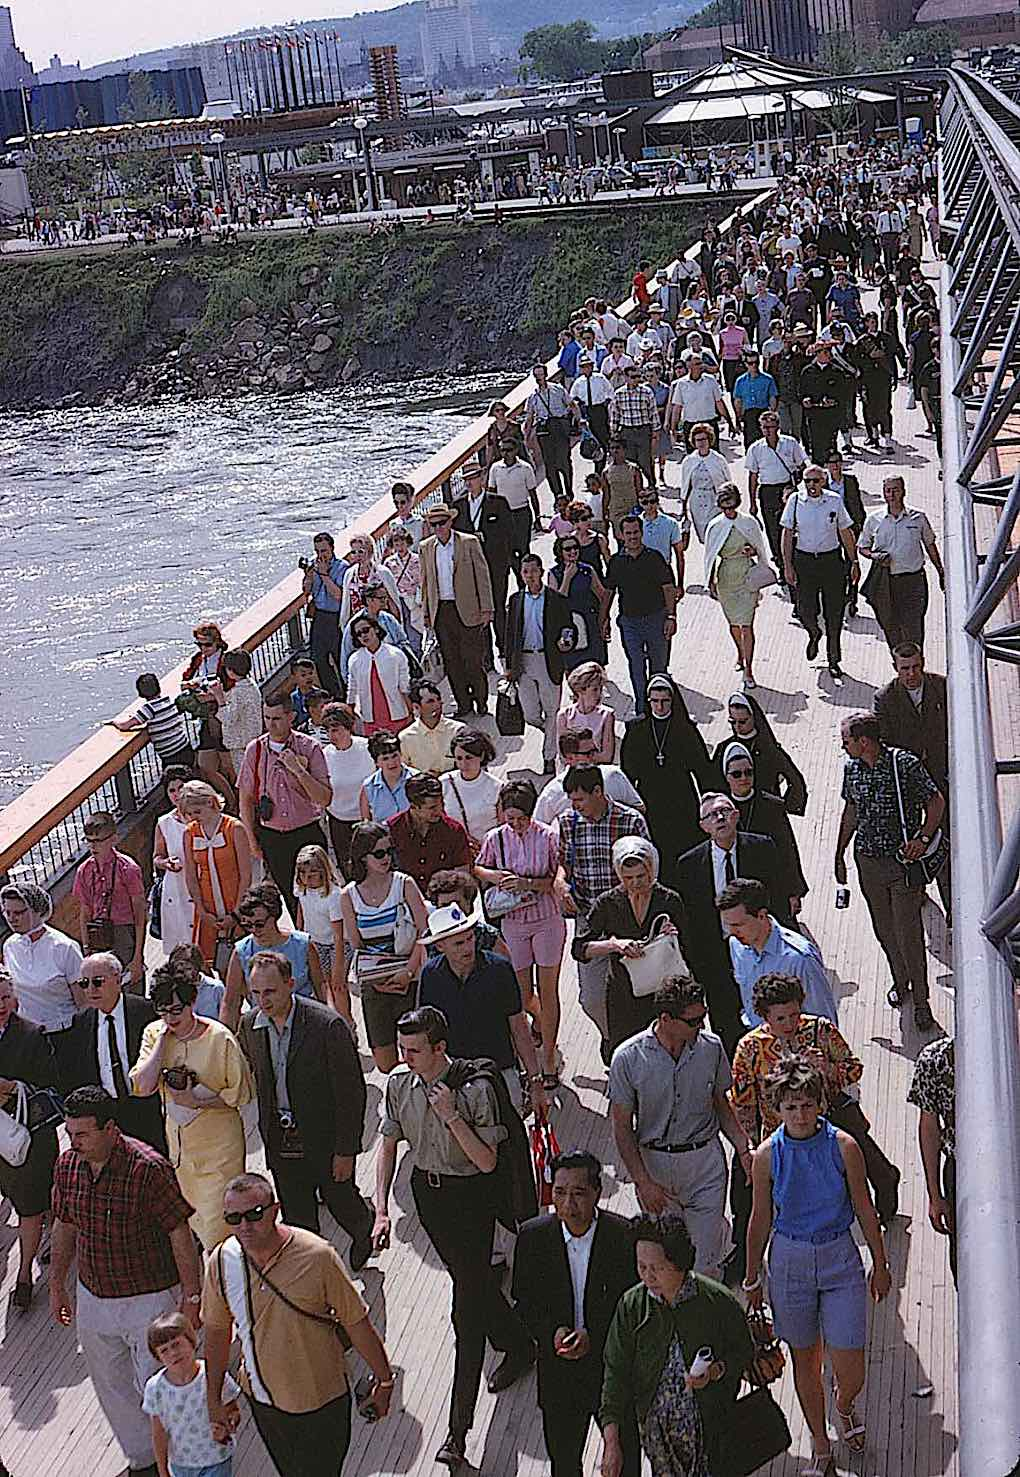 Expo '67 crowds, a photograph